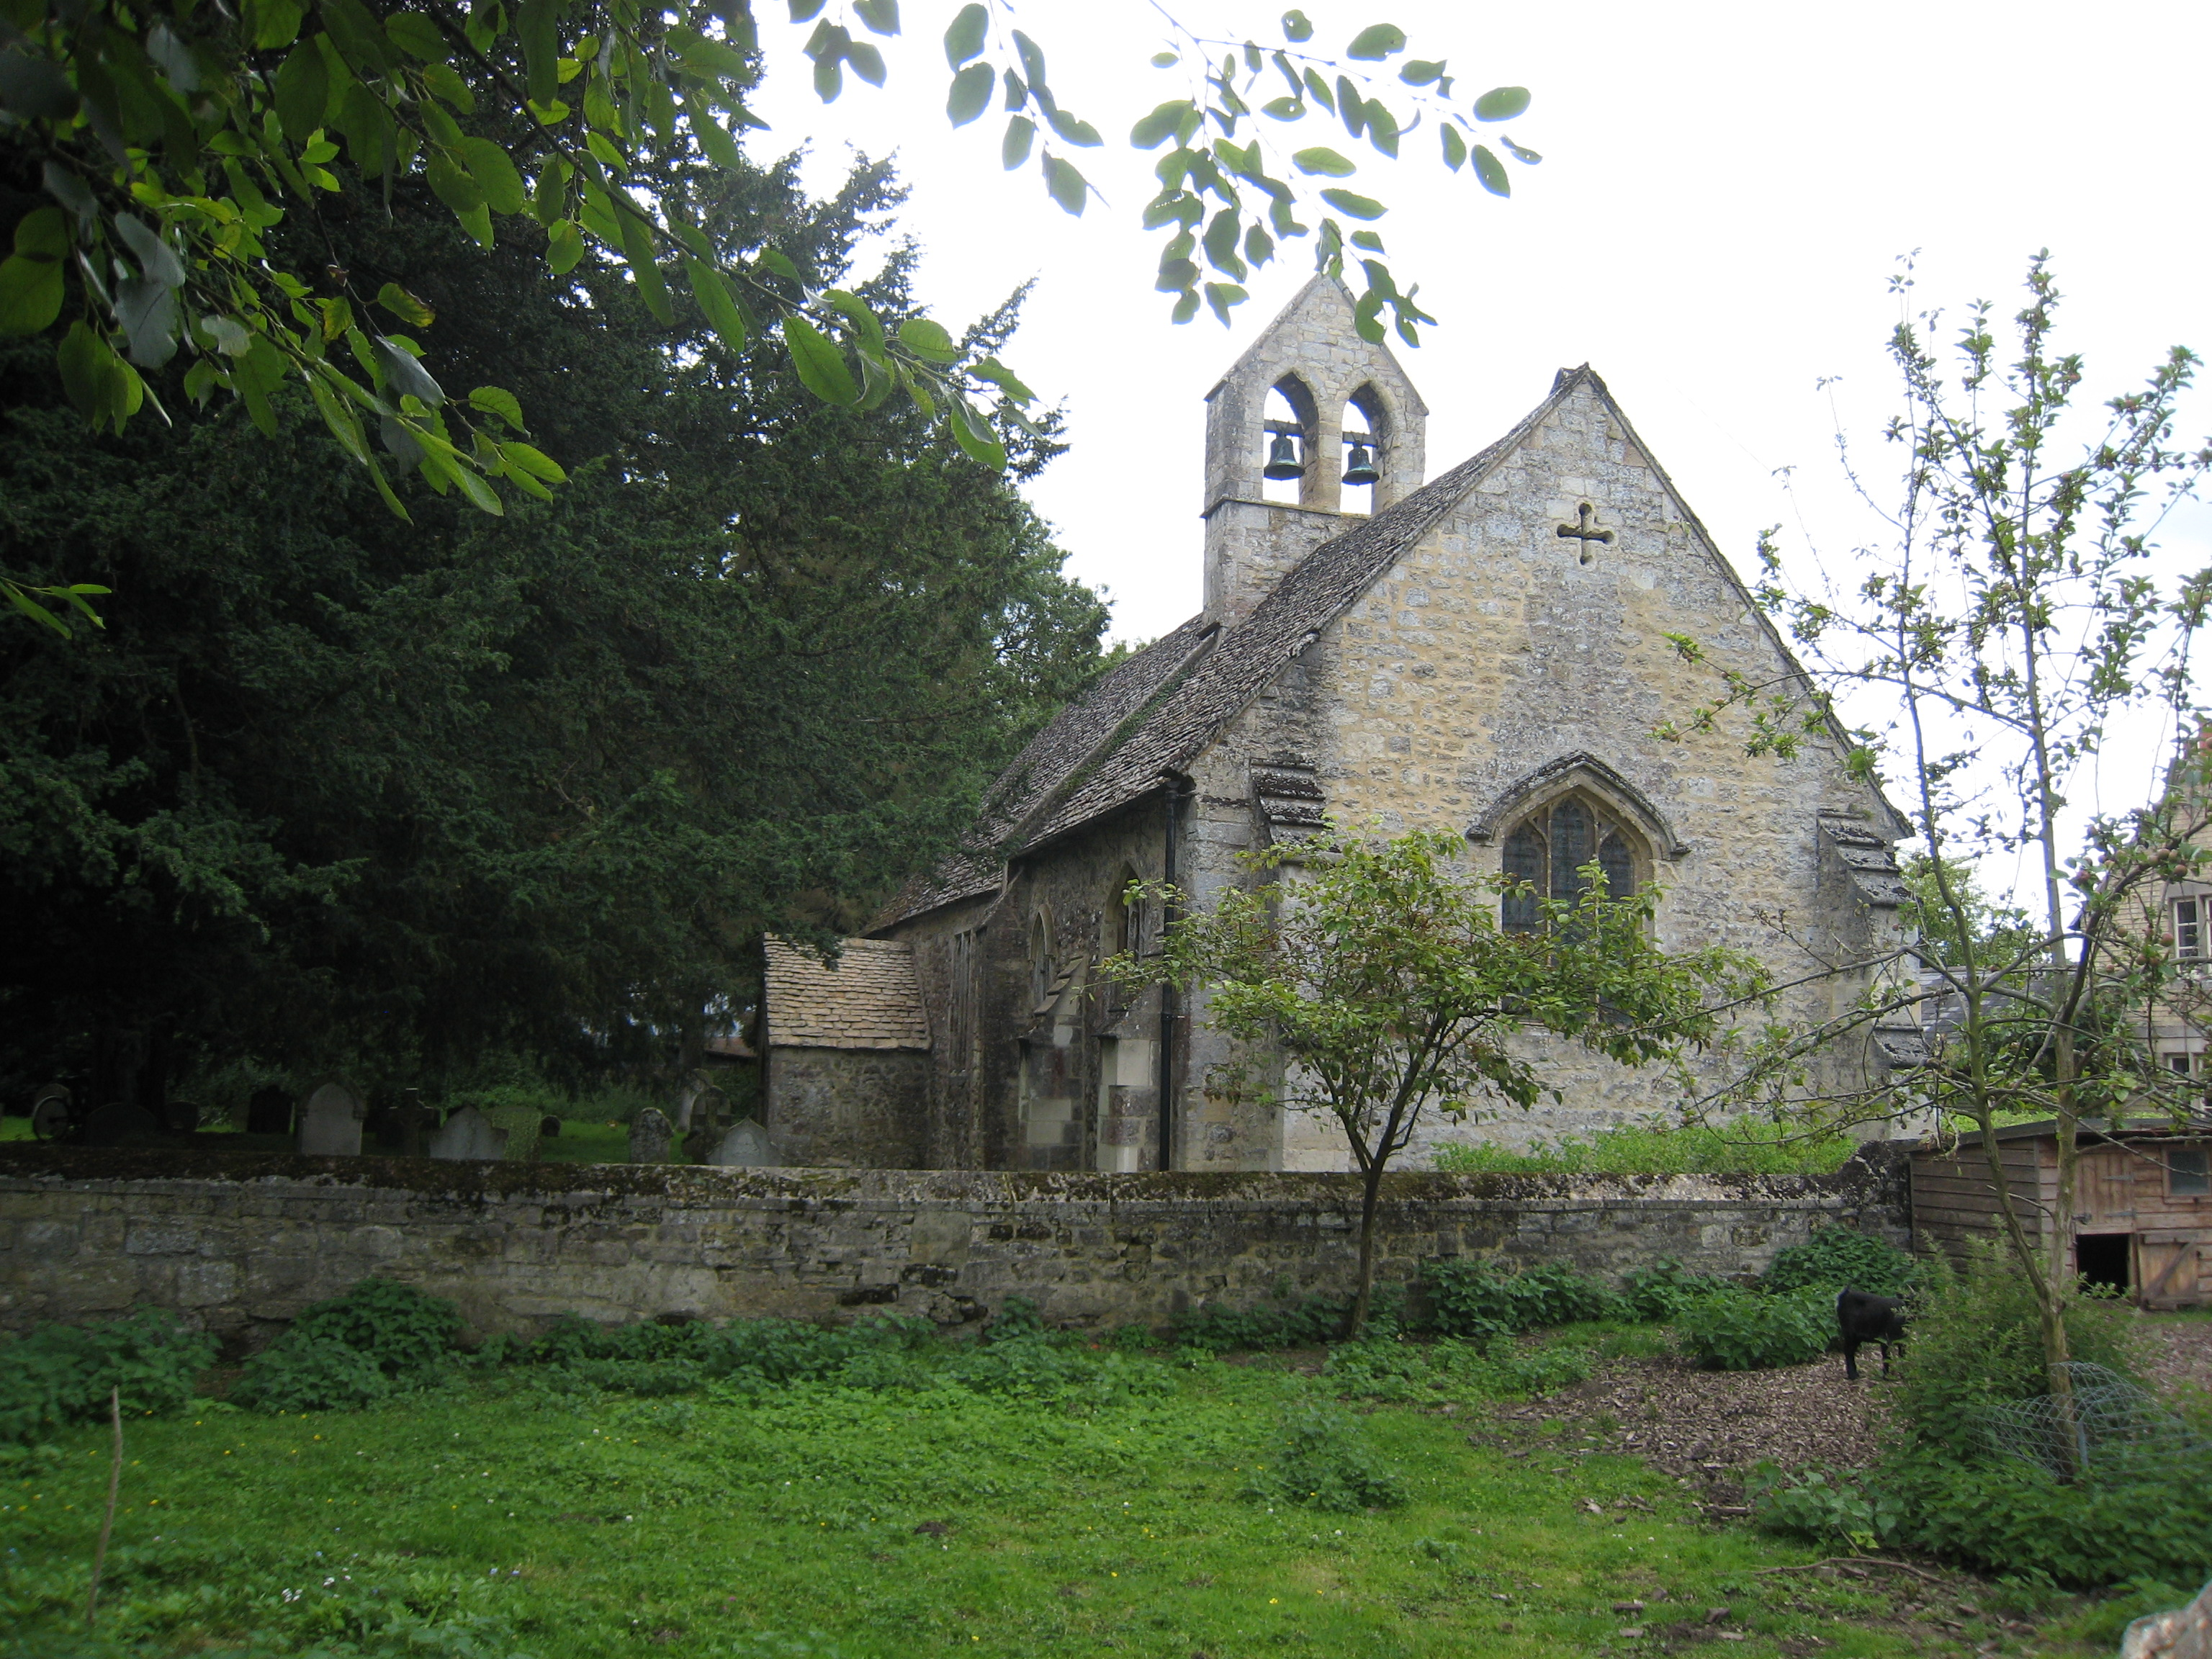 https://upload.wikimedia.org/wikipedia/commons/6/60/Binsey_church_oxford_uk.jpg